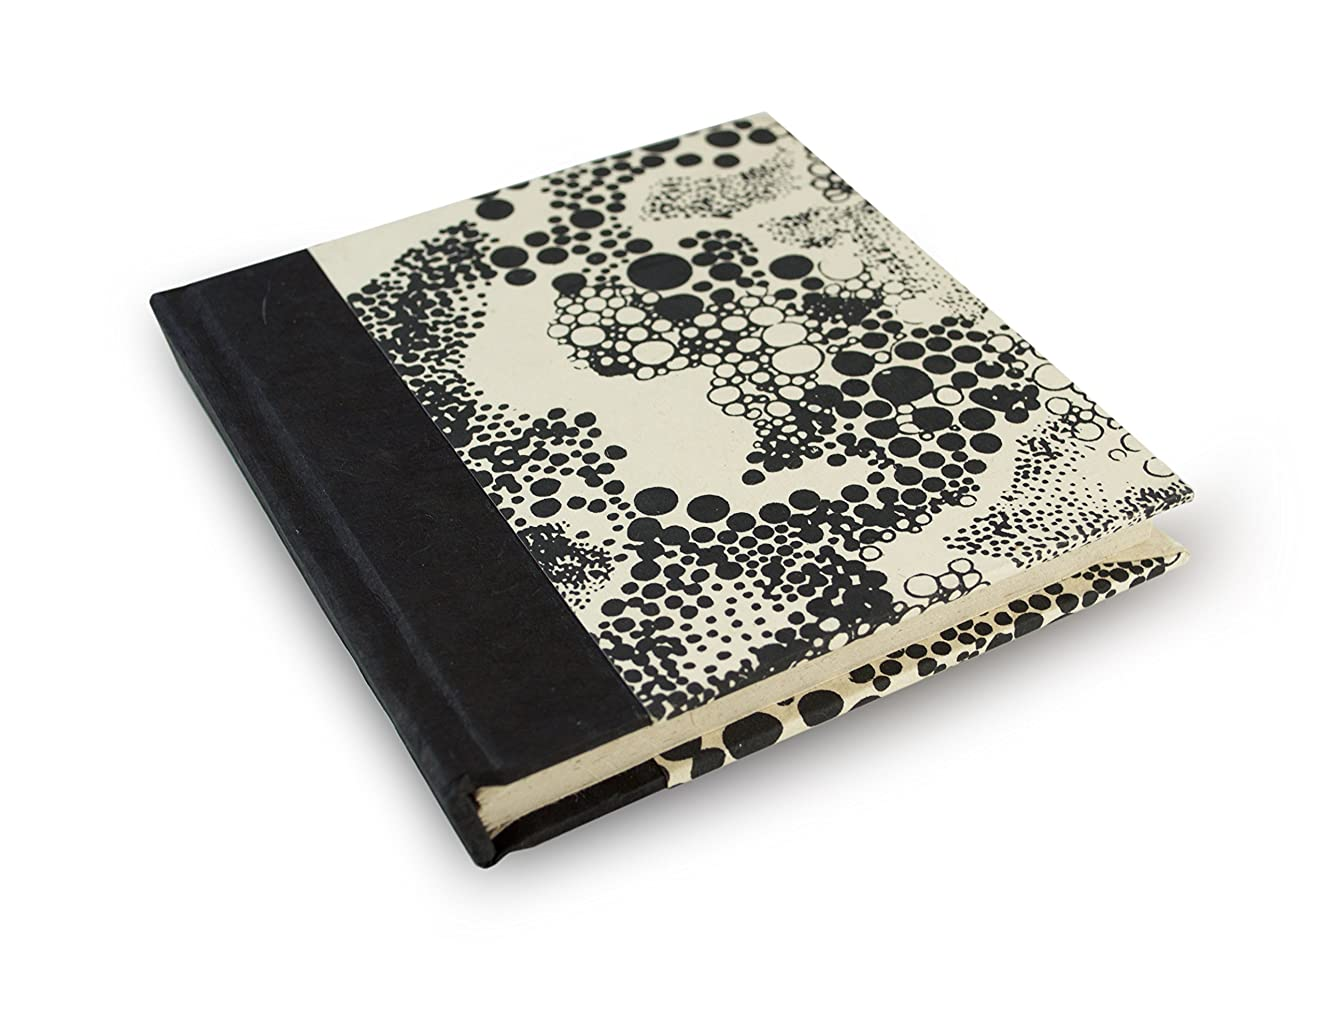 Nepali Dot Journal with hand-made Lokta paper. Made in Nepal. (6x6 Inches)